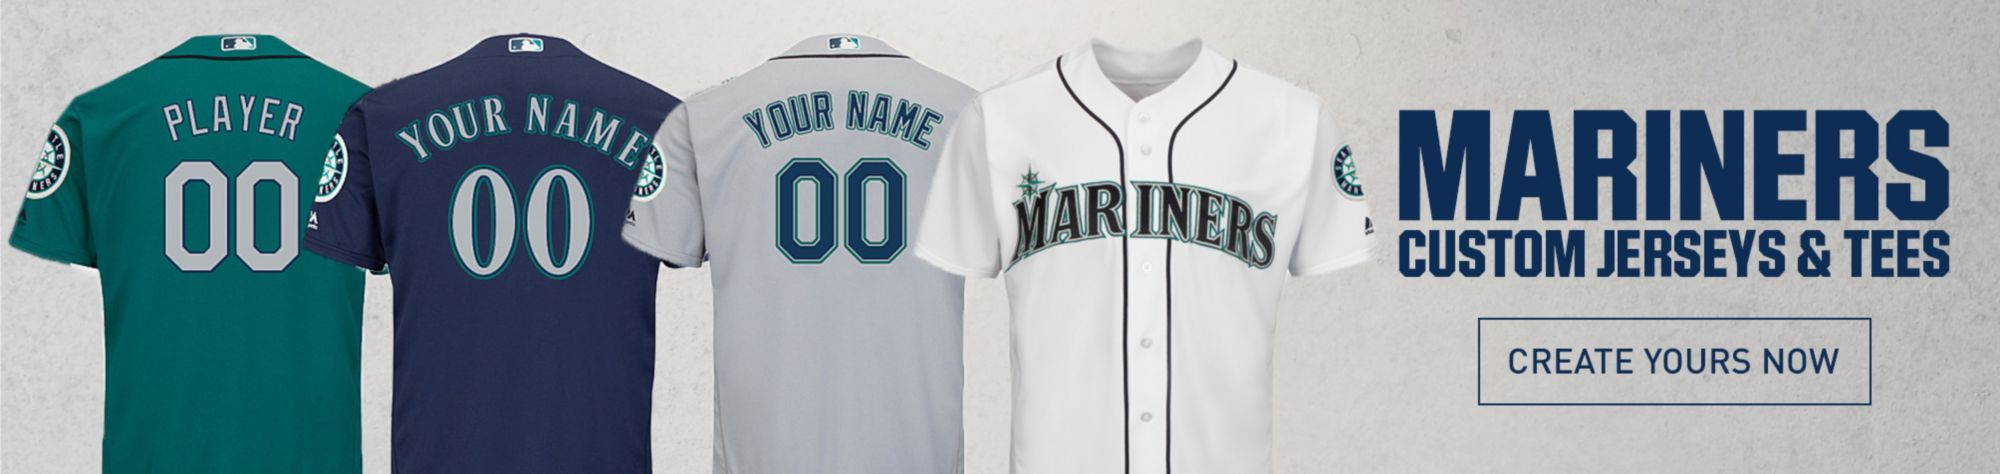 Seattle Mariners Custom Jerseys and Tees